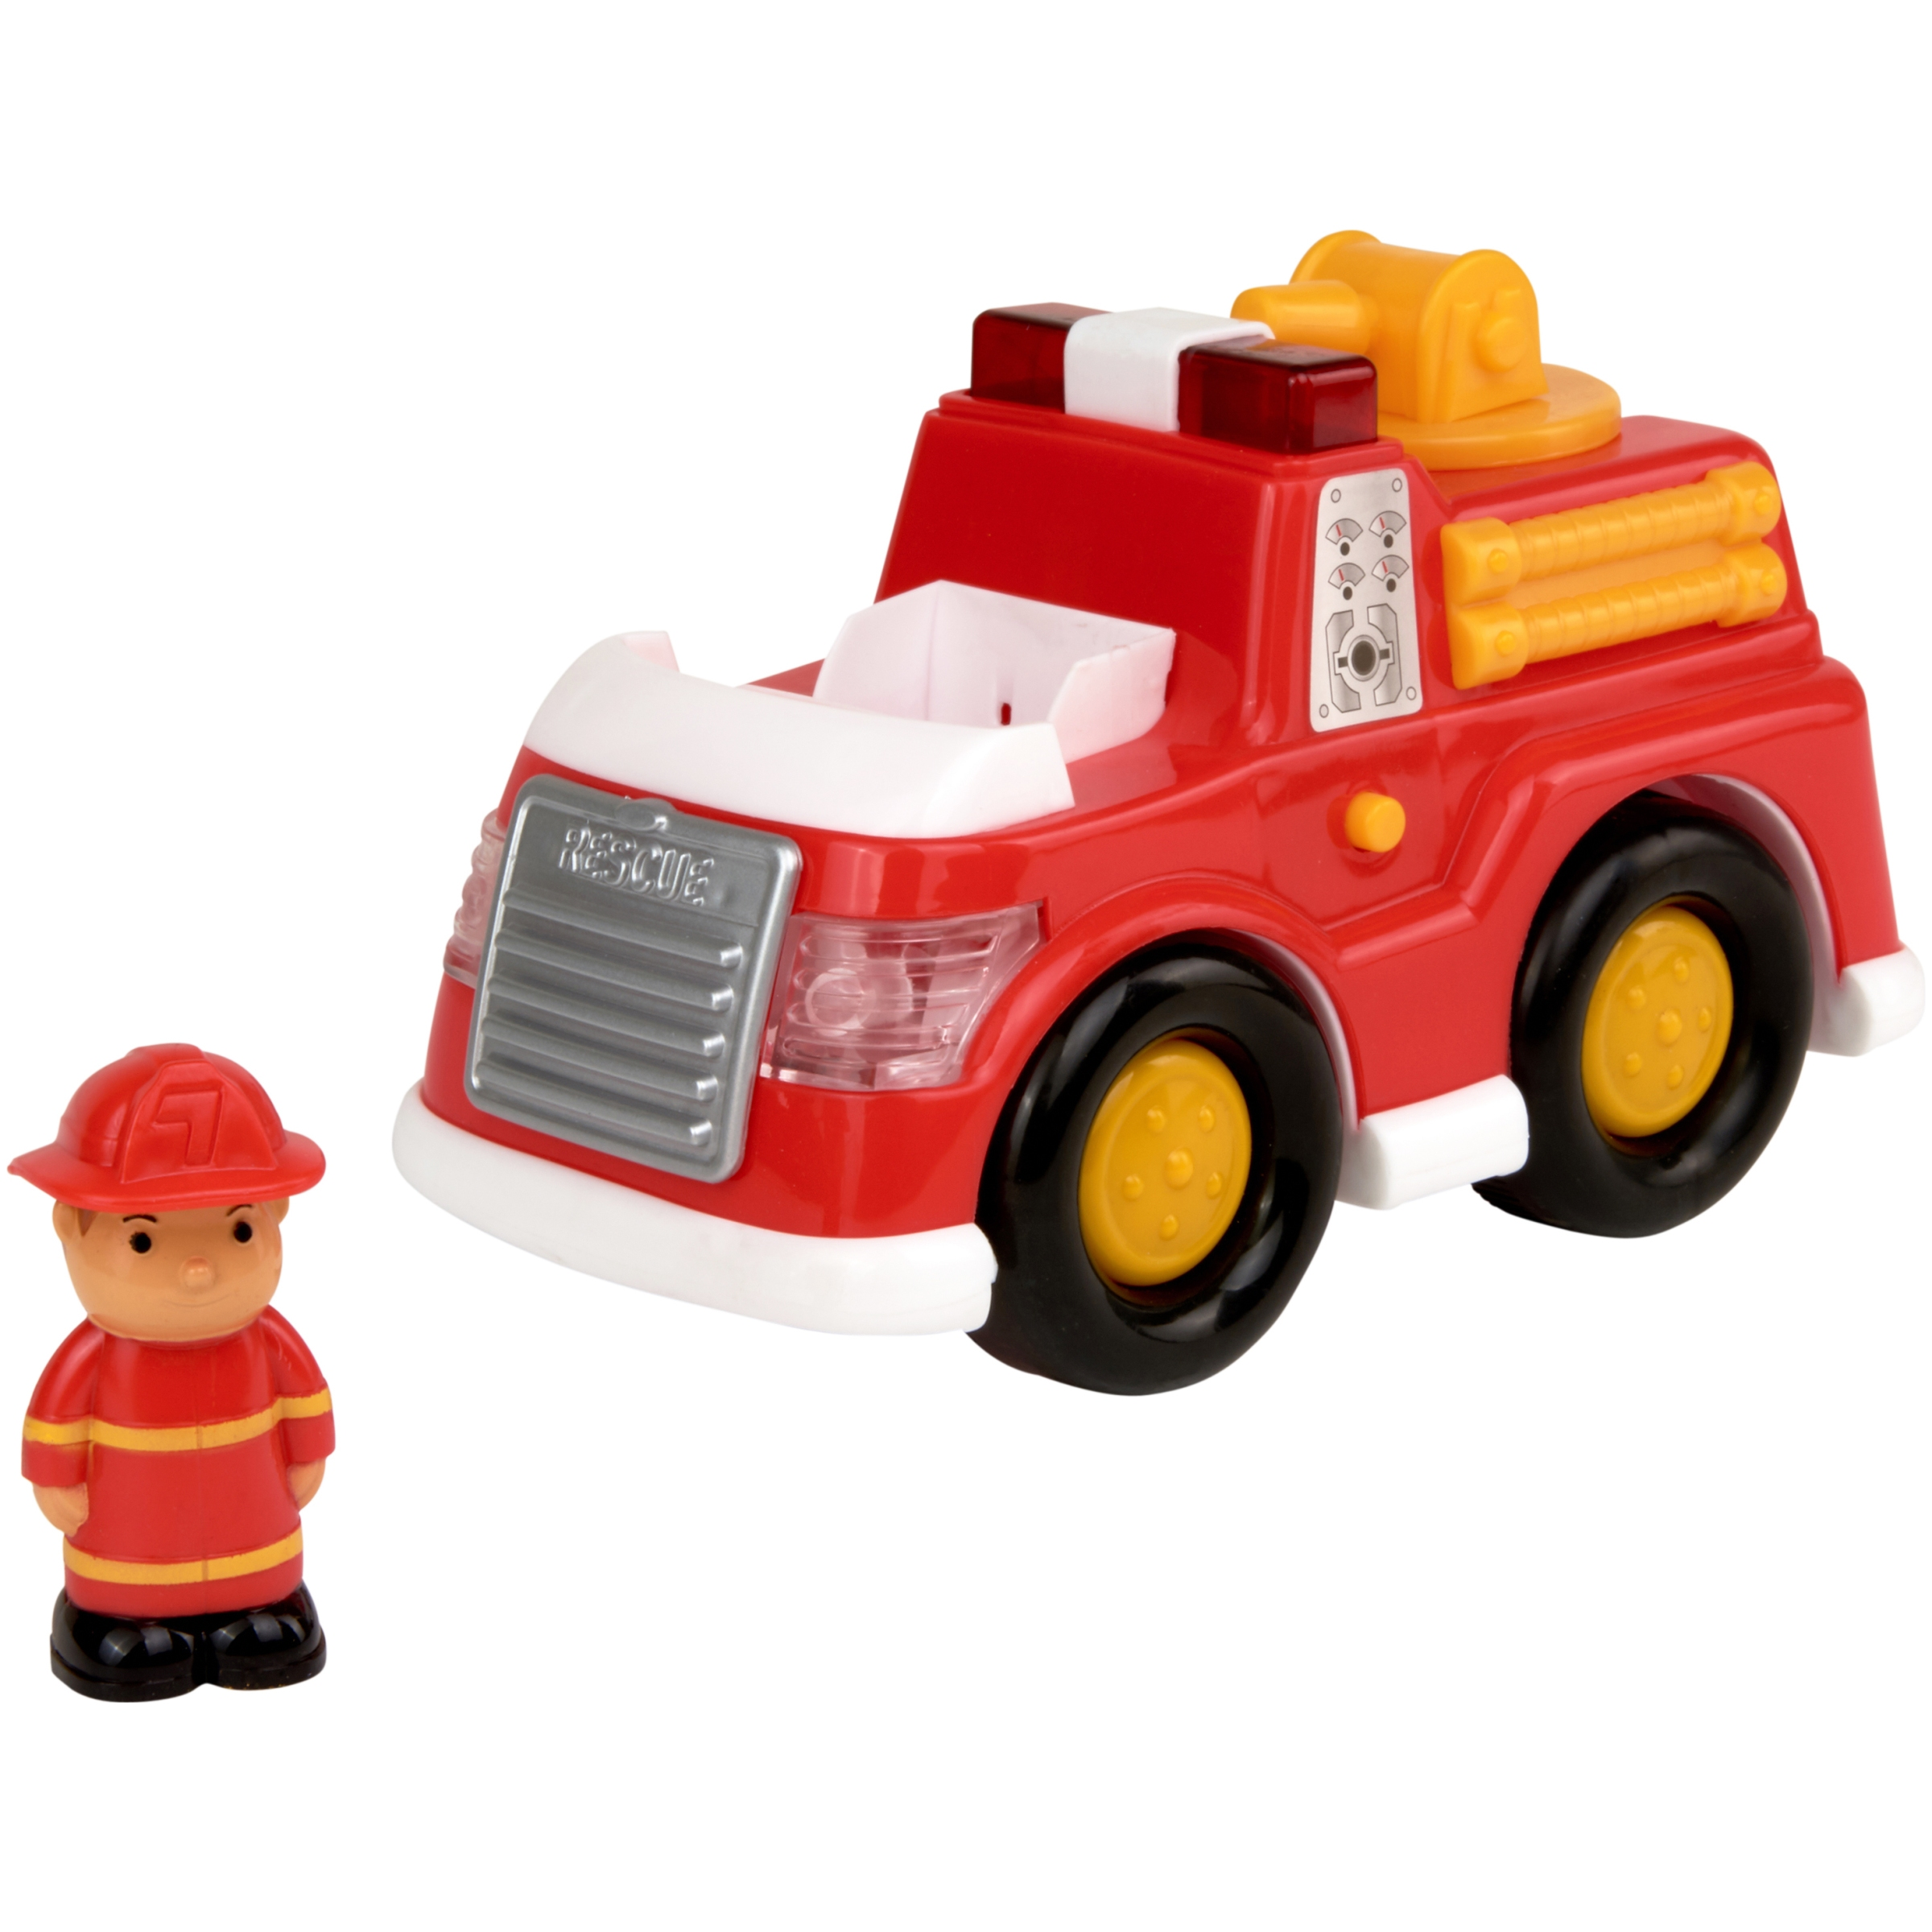 Kid Connection Light & Sound My First Vehicle Toy Fire Truck with Figure